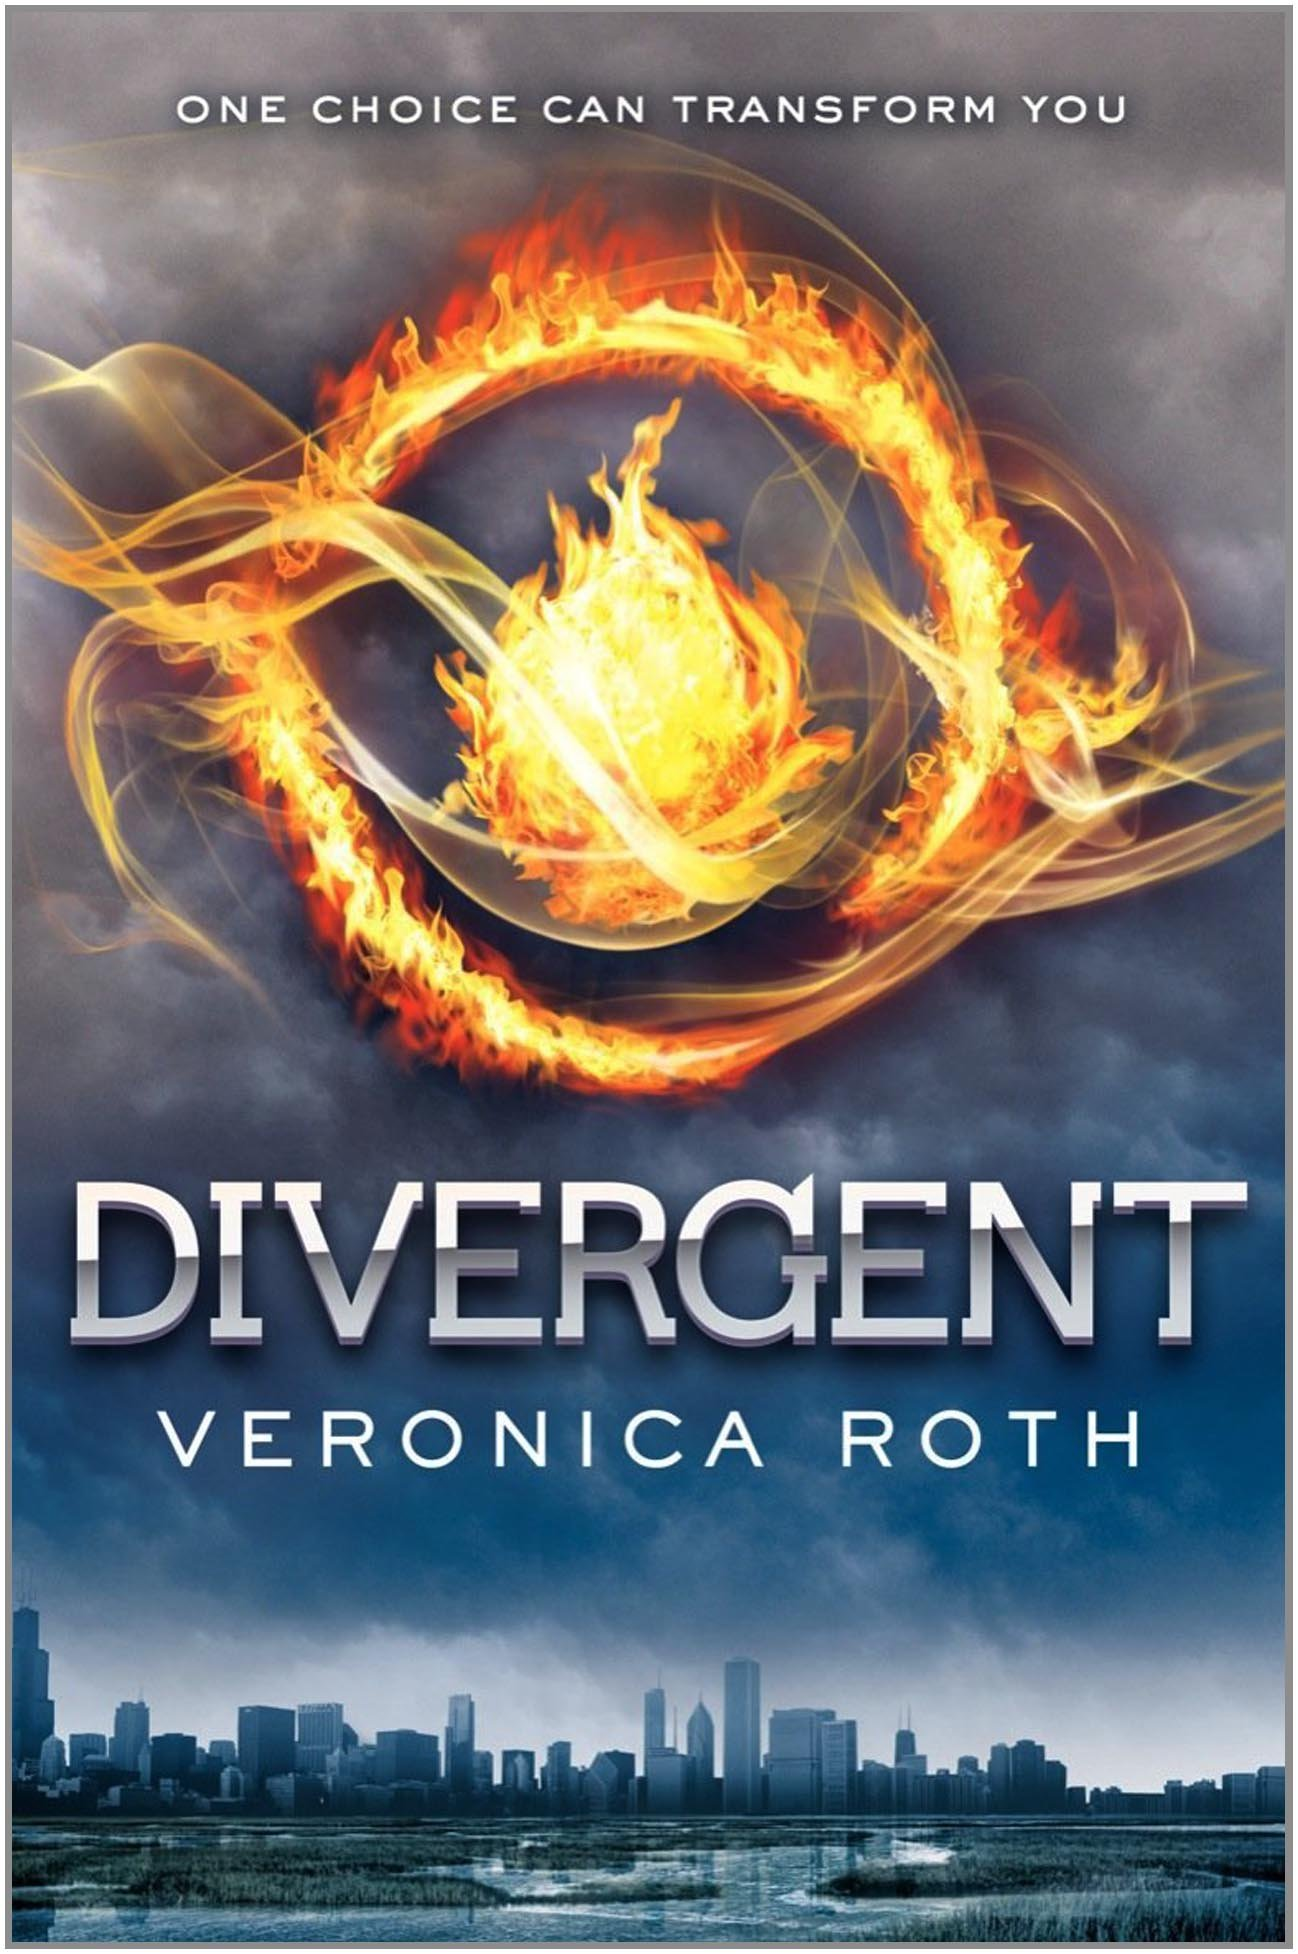 Amazon.com: Divergent (9780062024039): Veronica Roth: Books